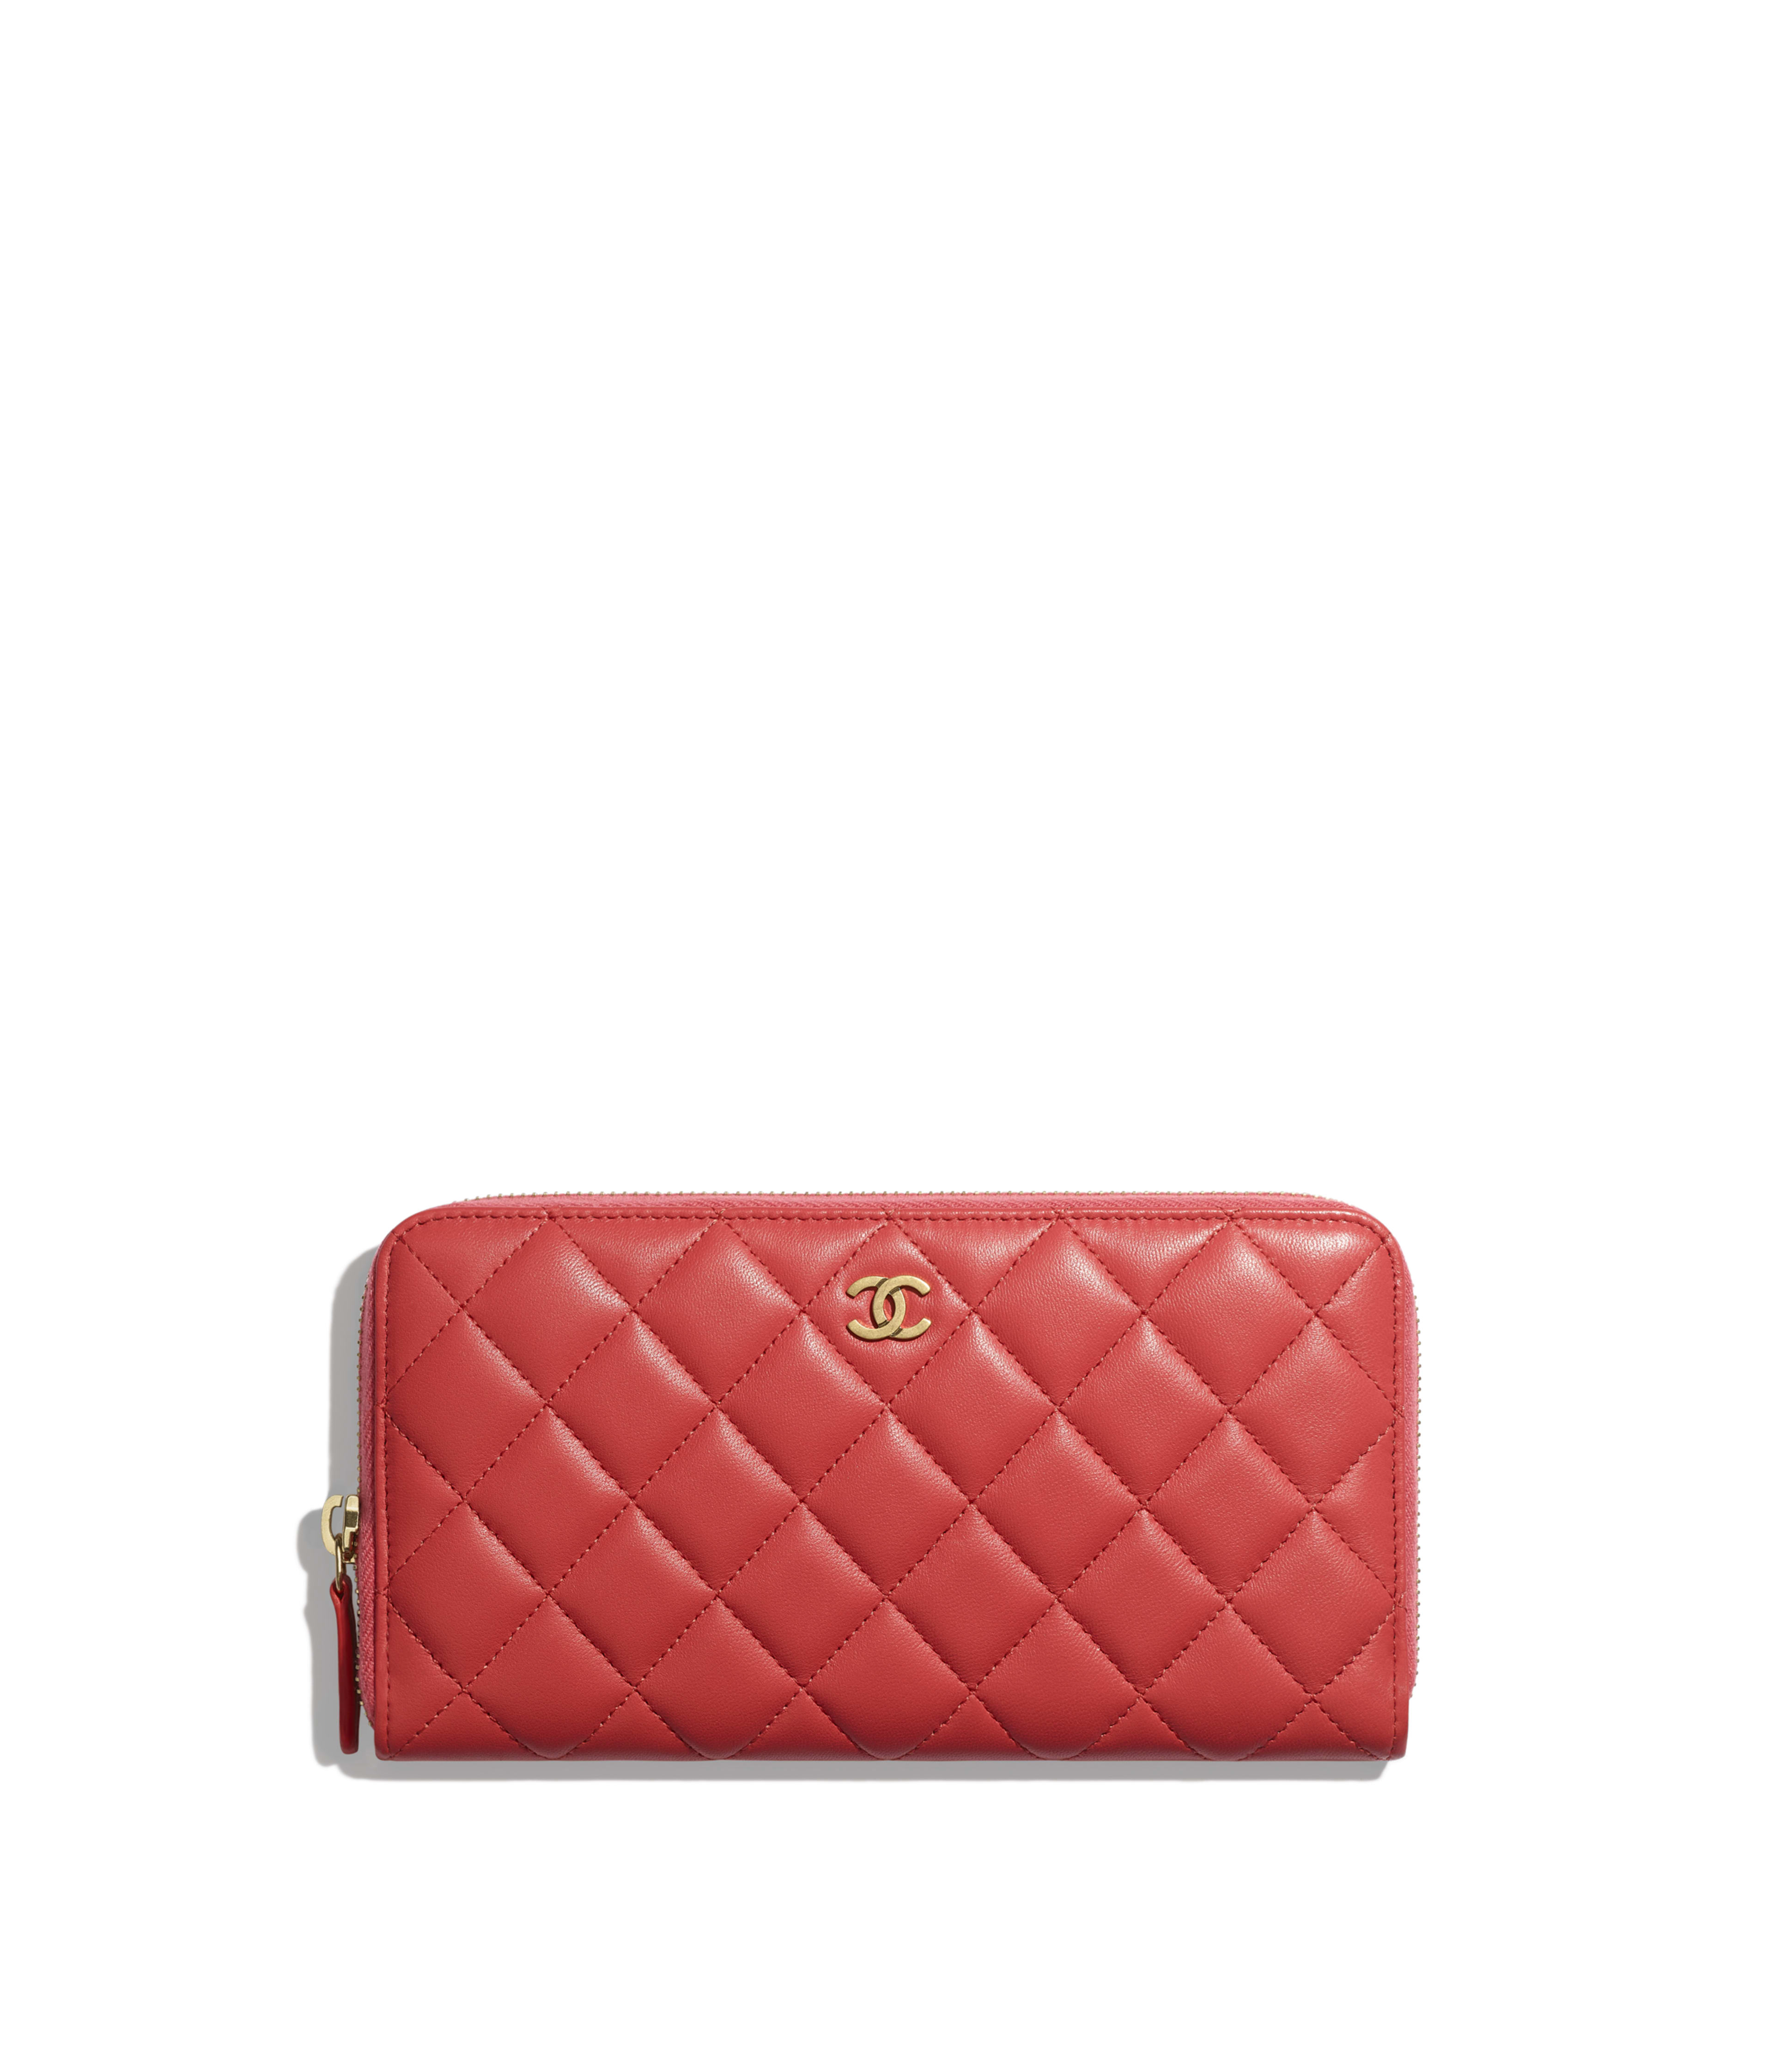 021cf37e98c6 Classic Long Zipped Wallet Lambskin & Gold-Tone Metal, Red Ref.  A50097Y07659N0896